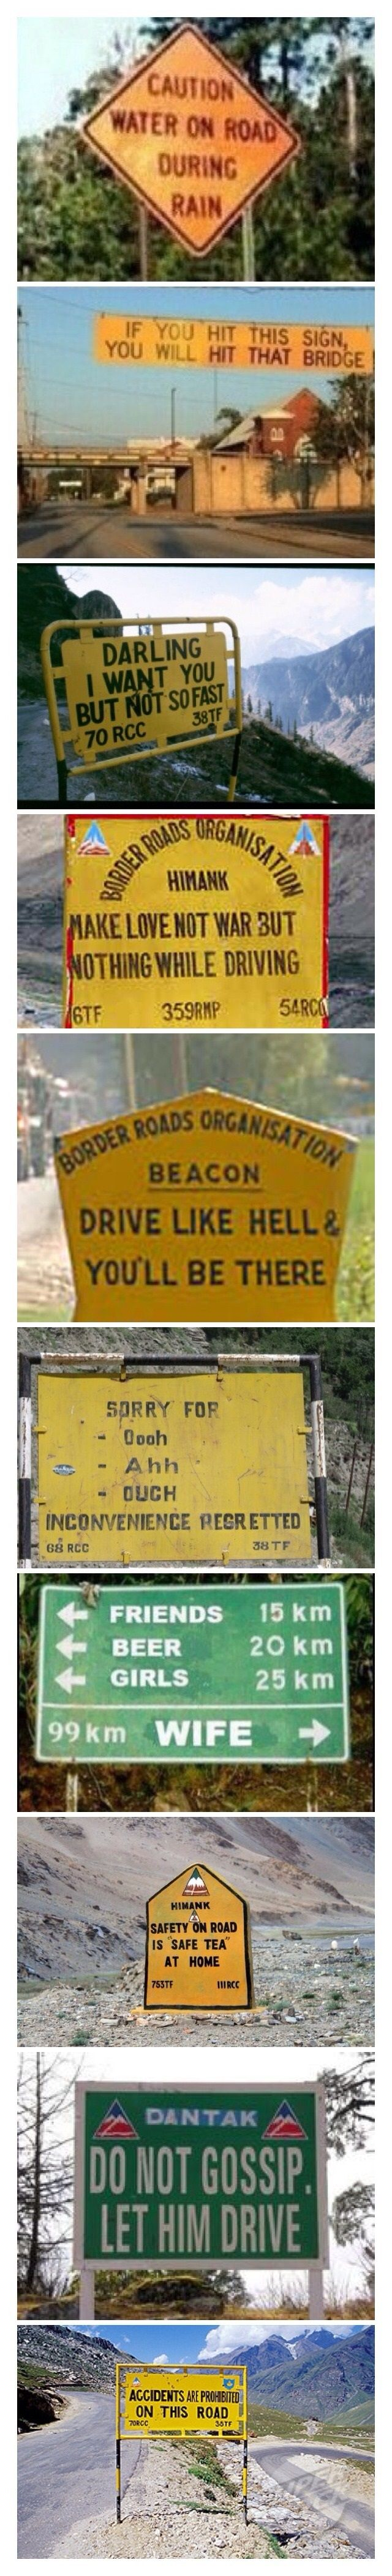 Funny Road Signs In India Road Signs In India Funny Road Signs